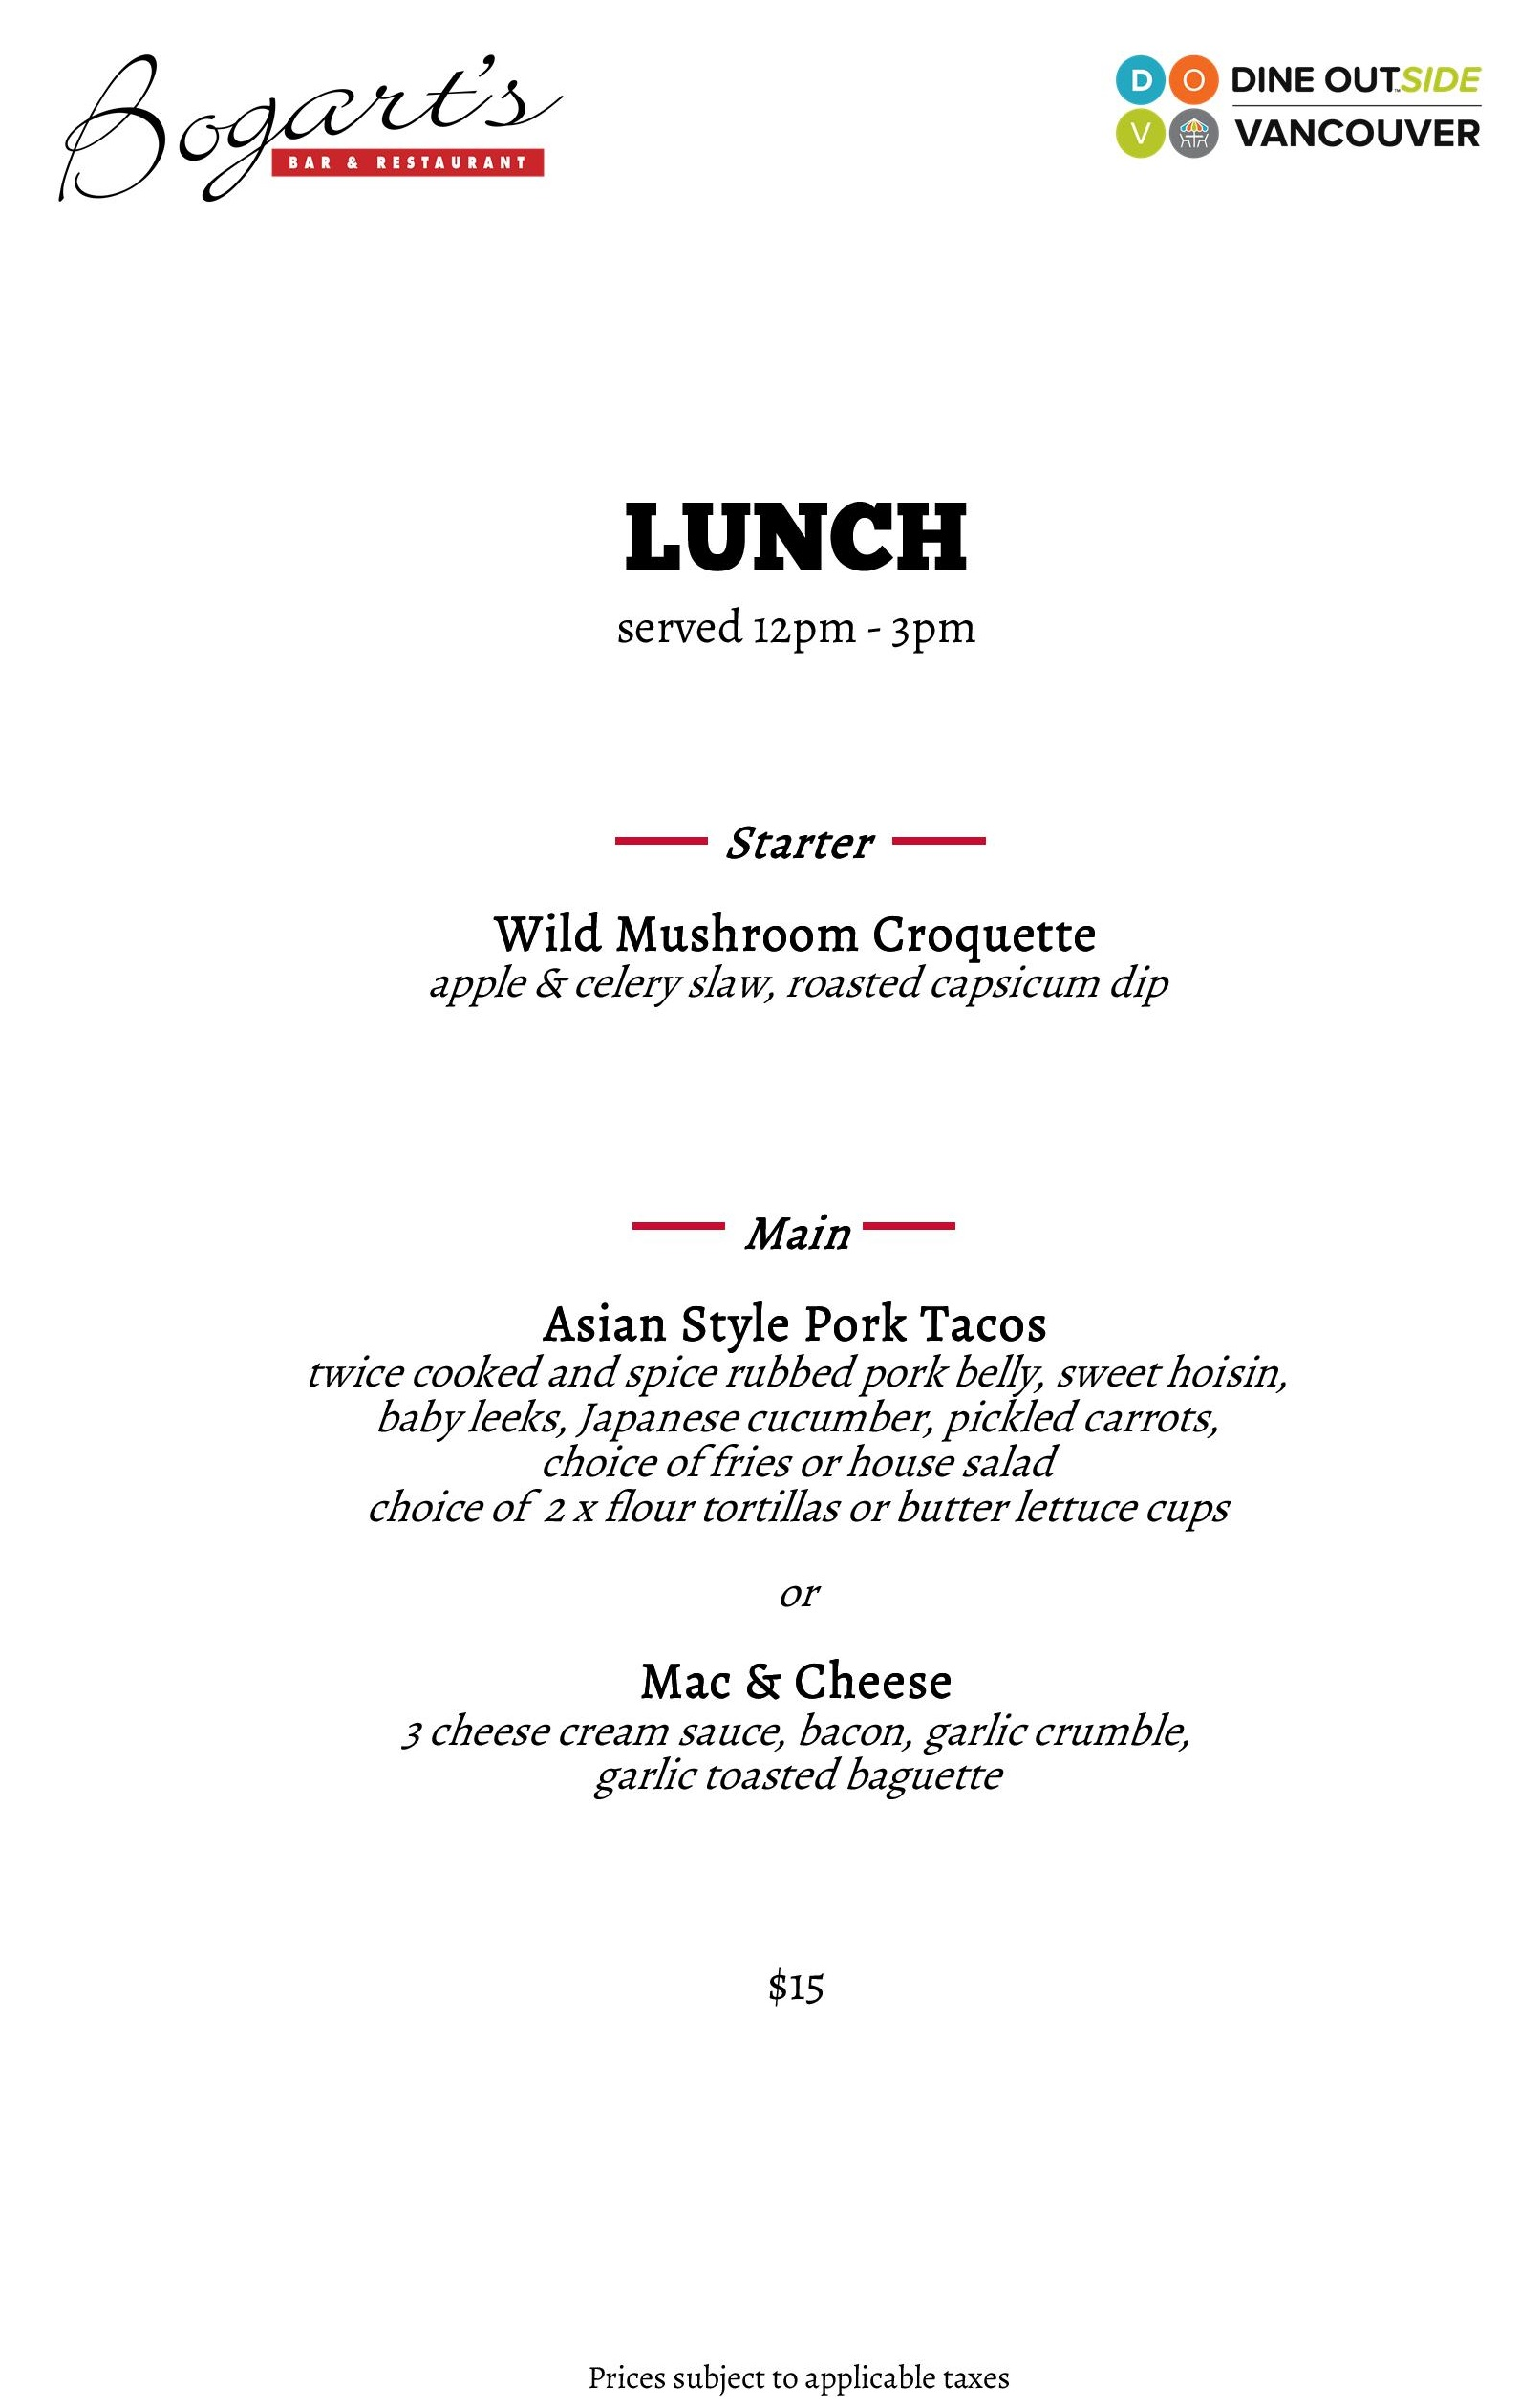 Bogarts dine outside lunch menu Aug 2020-page-002